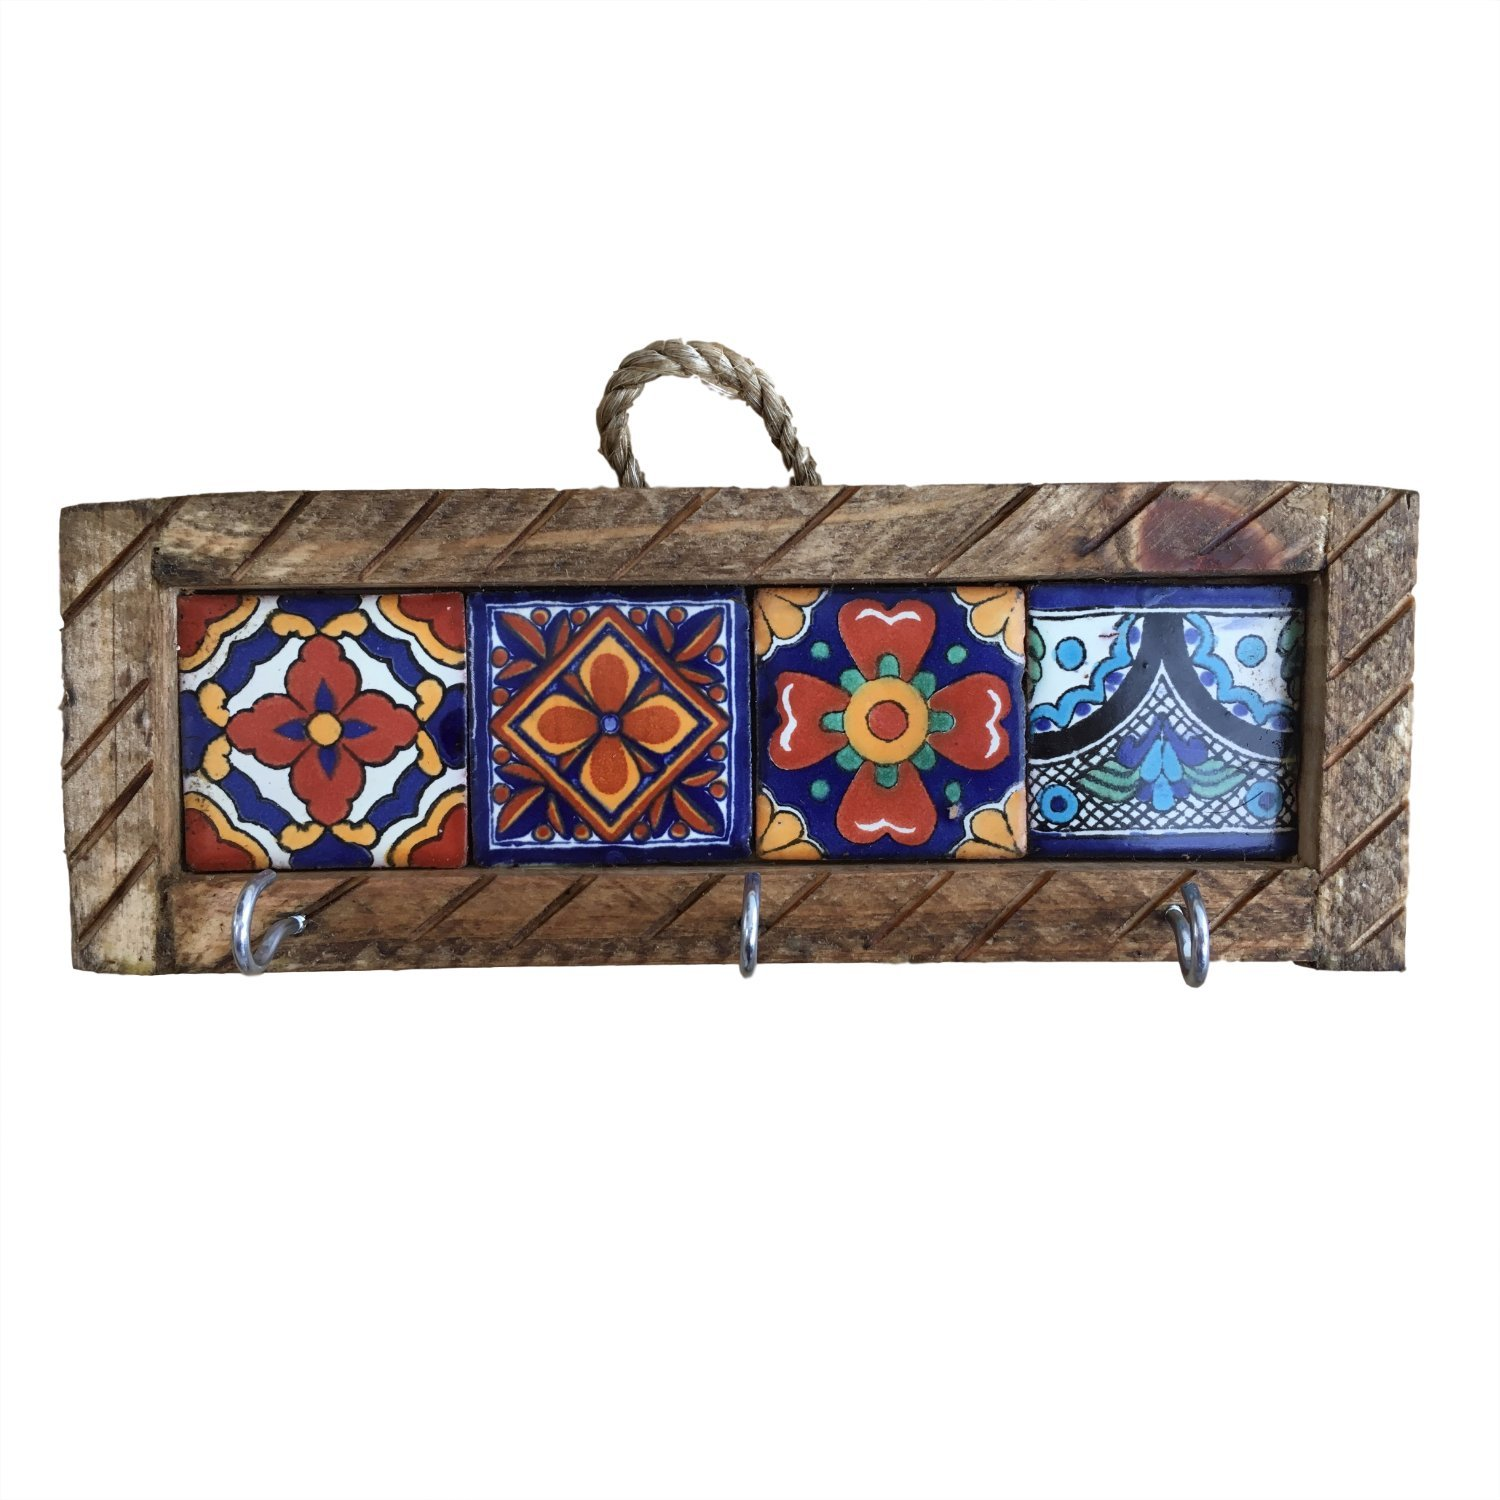 Casa Fiesta Designs Mexican Key Holder with Metal Hooks and Colorful Talavera Tiles - Mexican Style - Talavera Wall Art - Mexican Home Decor - Assorted Tiles